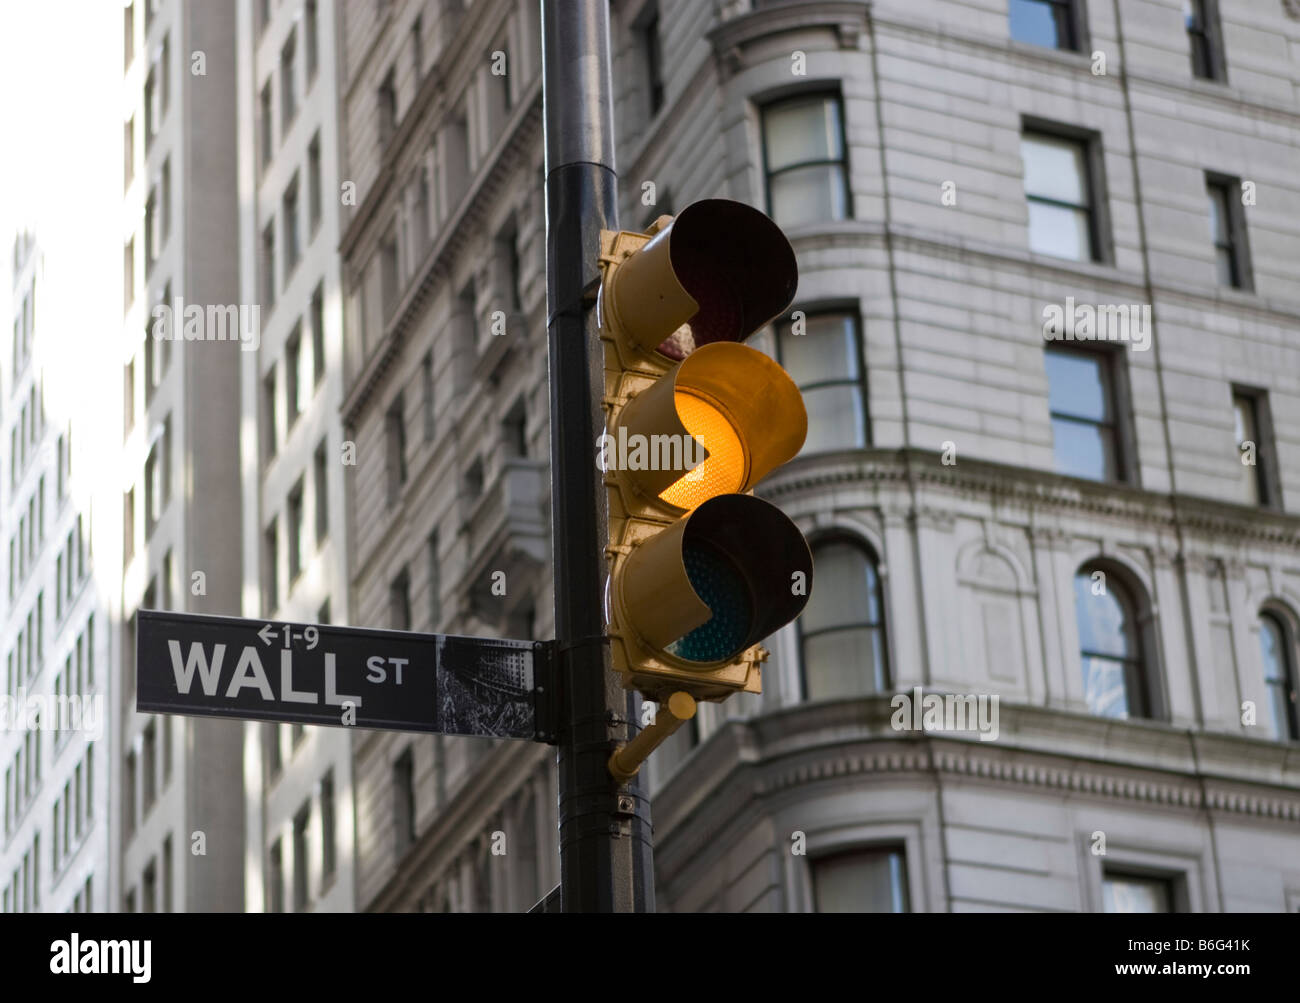 A Wall Street street sign is seen next to an amber traffic light in New York, NY. - Stock Image